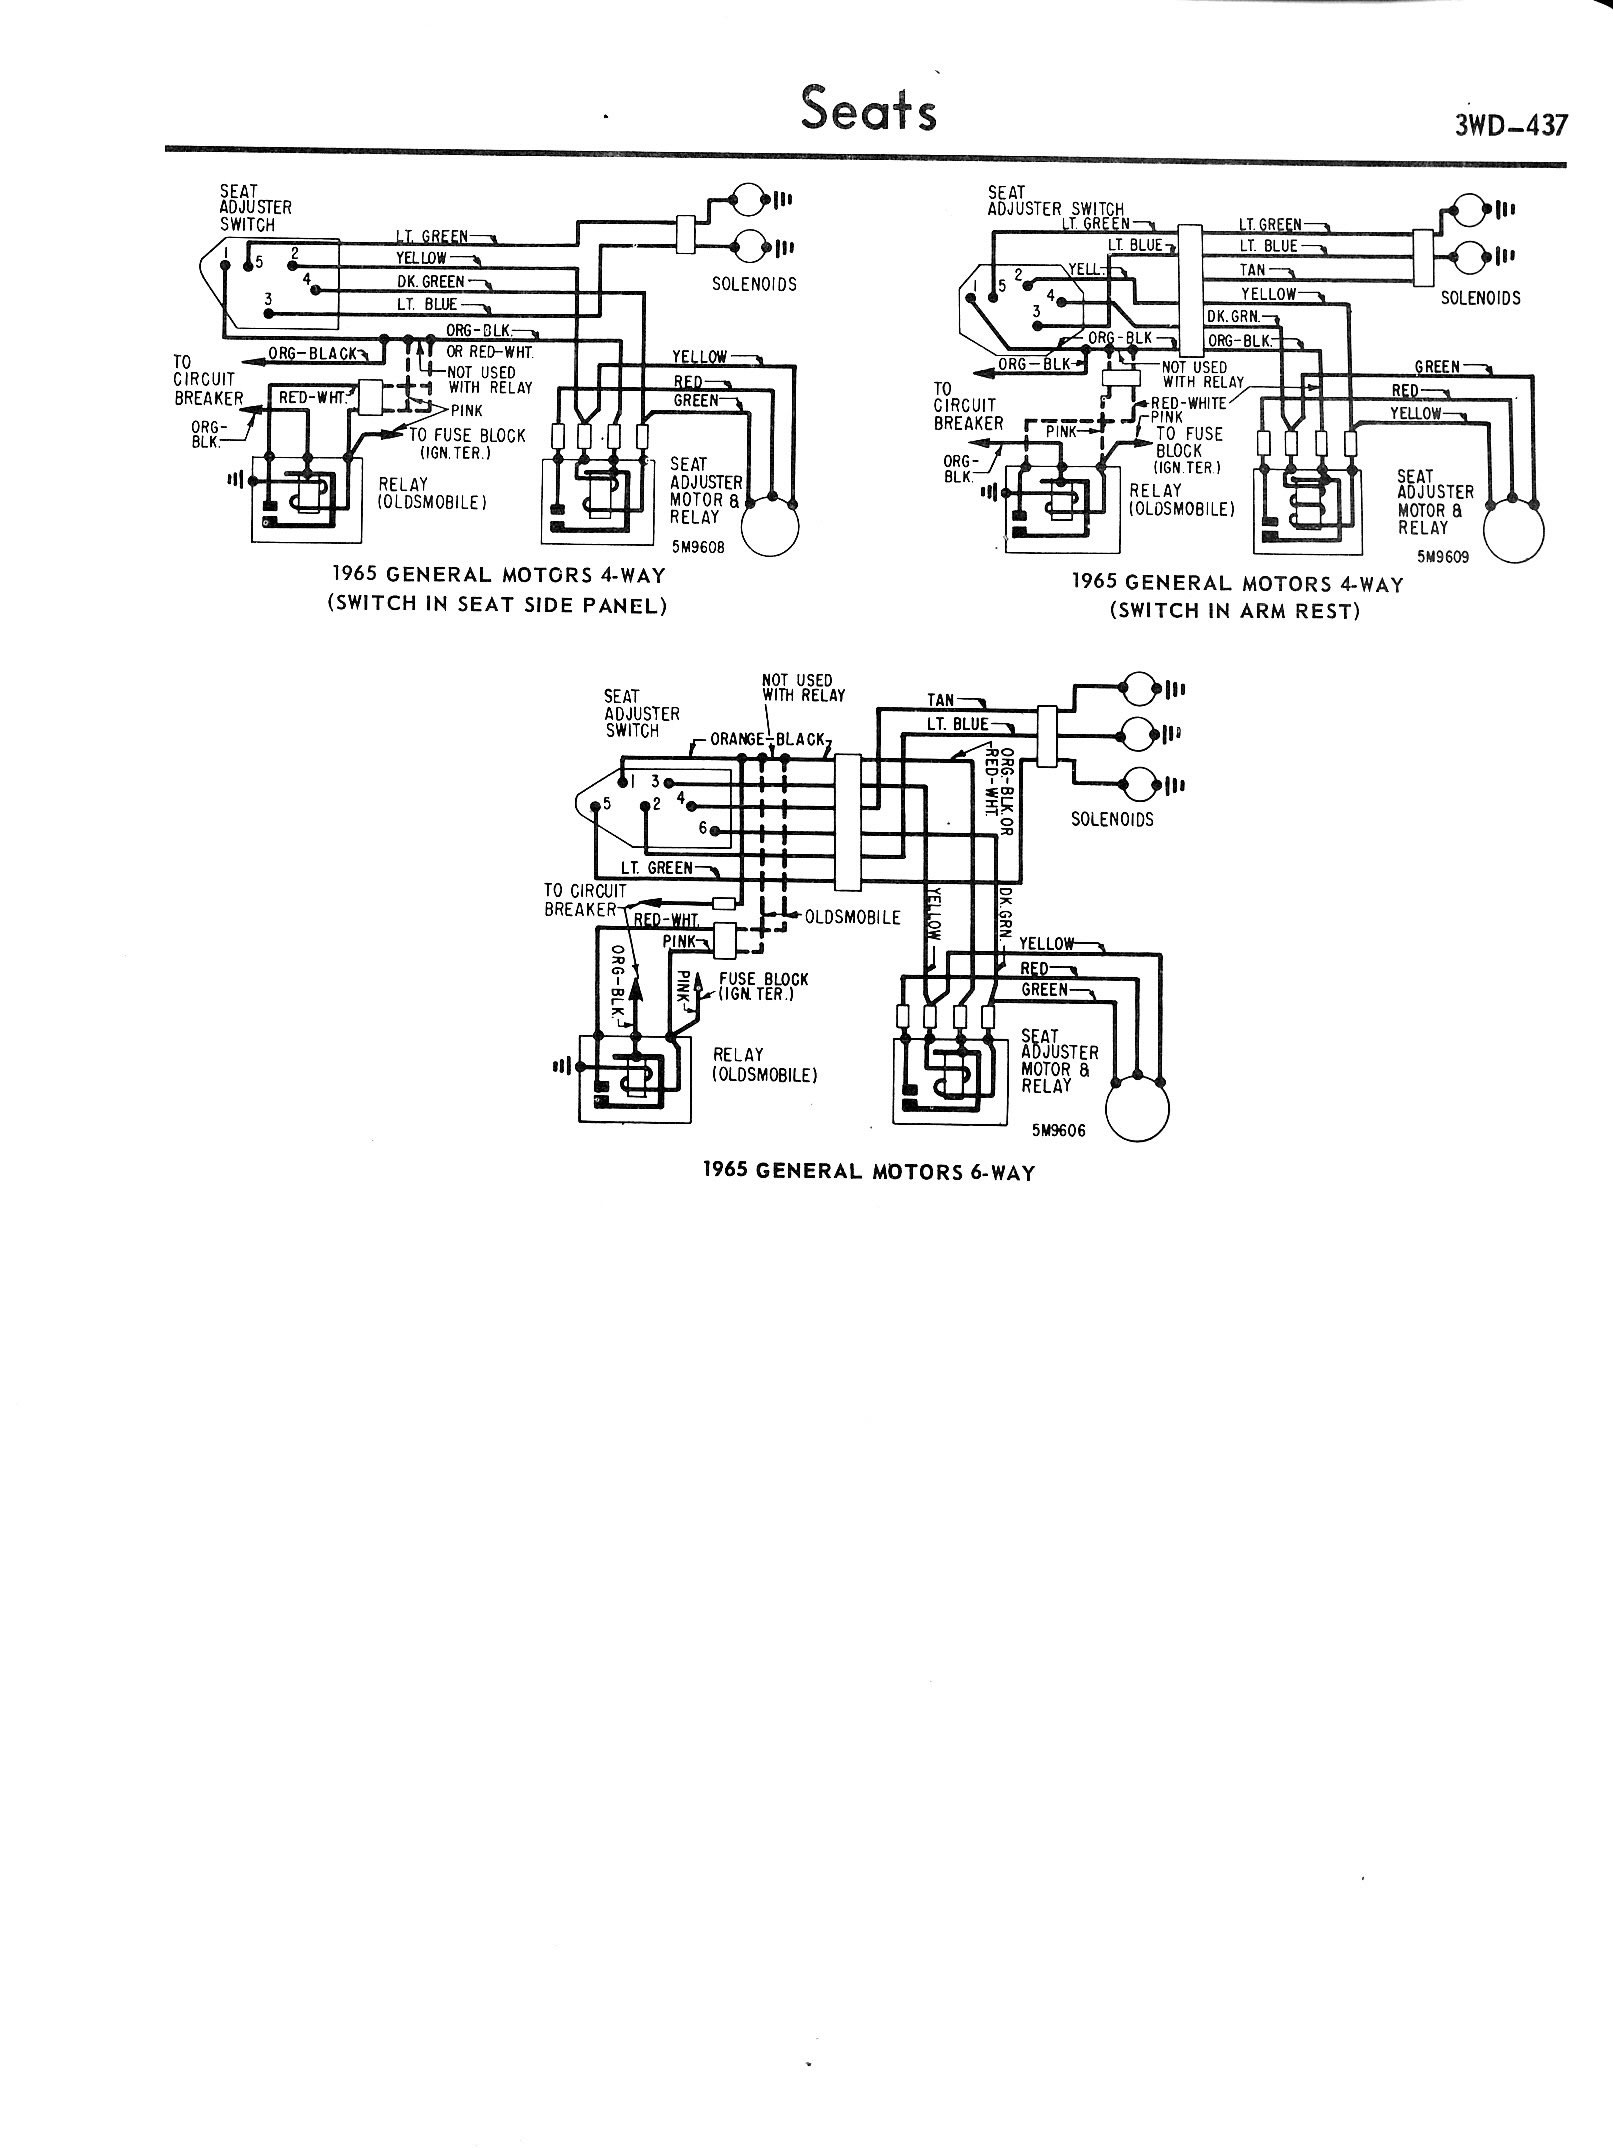 1957-1965 Accessory Wiring Diagrams / 3WD-437.jpg